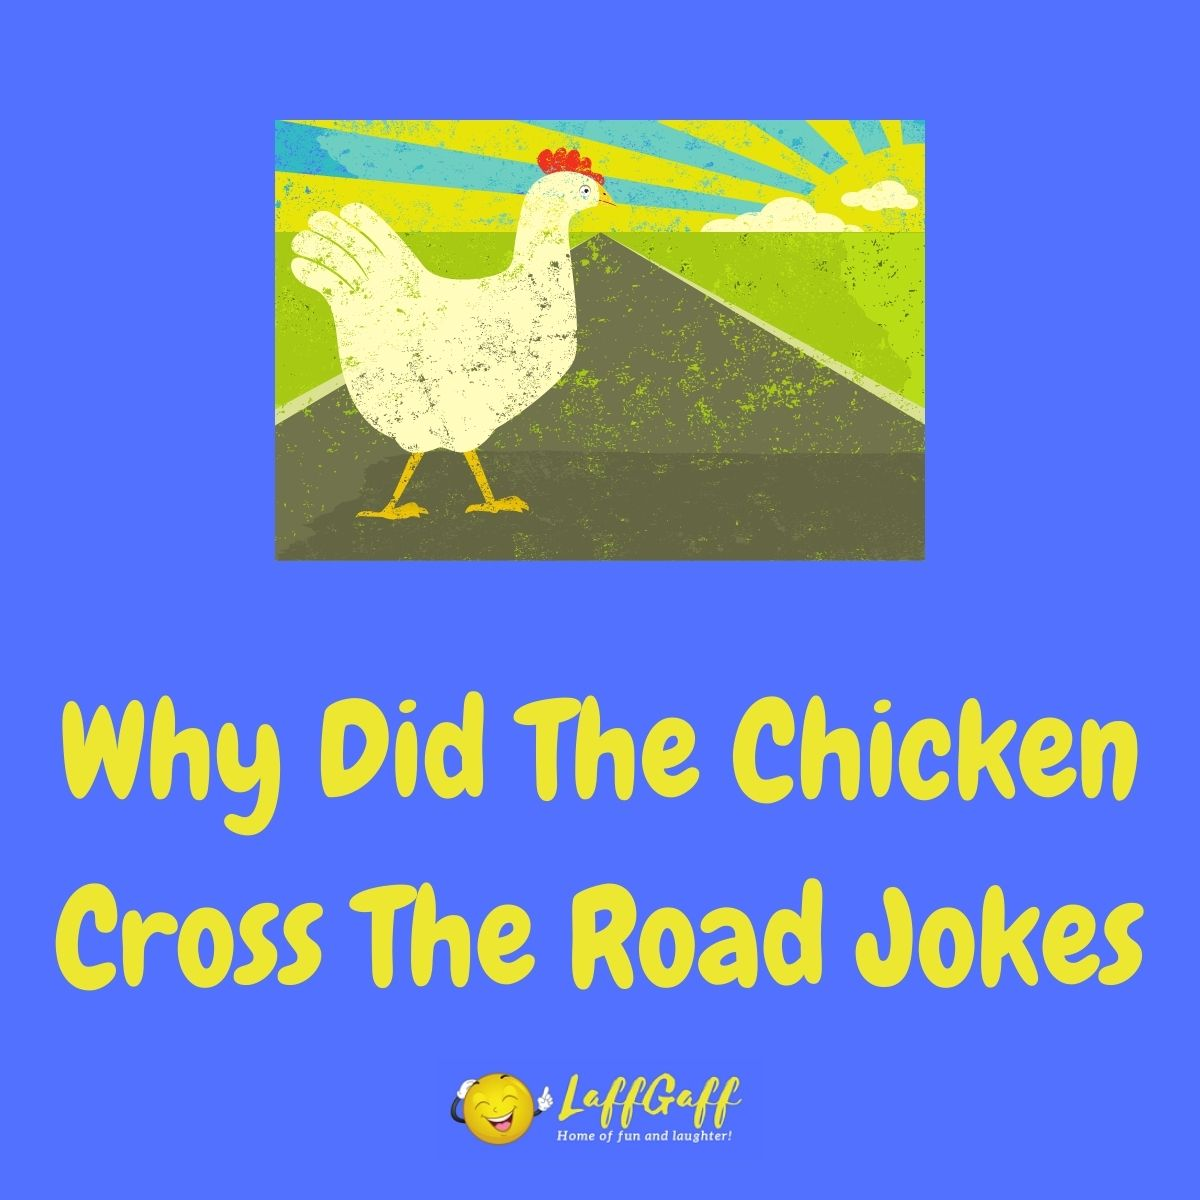 Featured image for a page of funny Why did the chicken cross the road jokes.